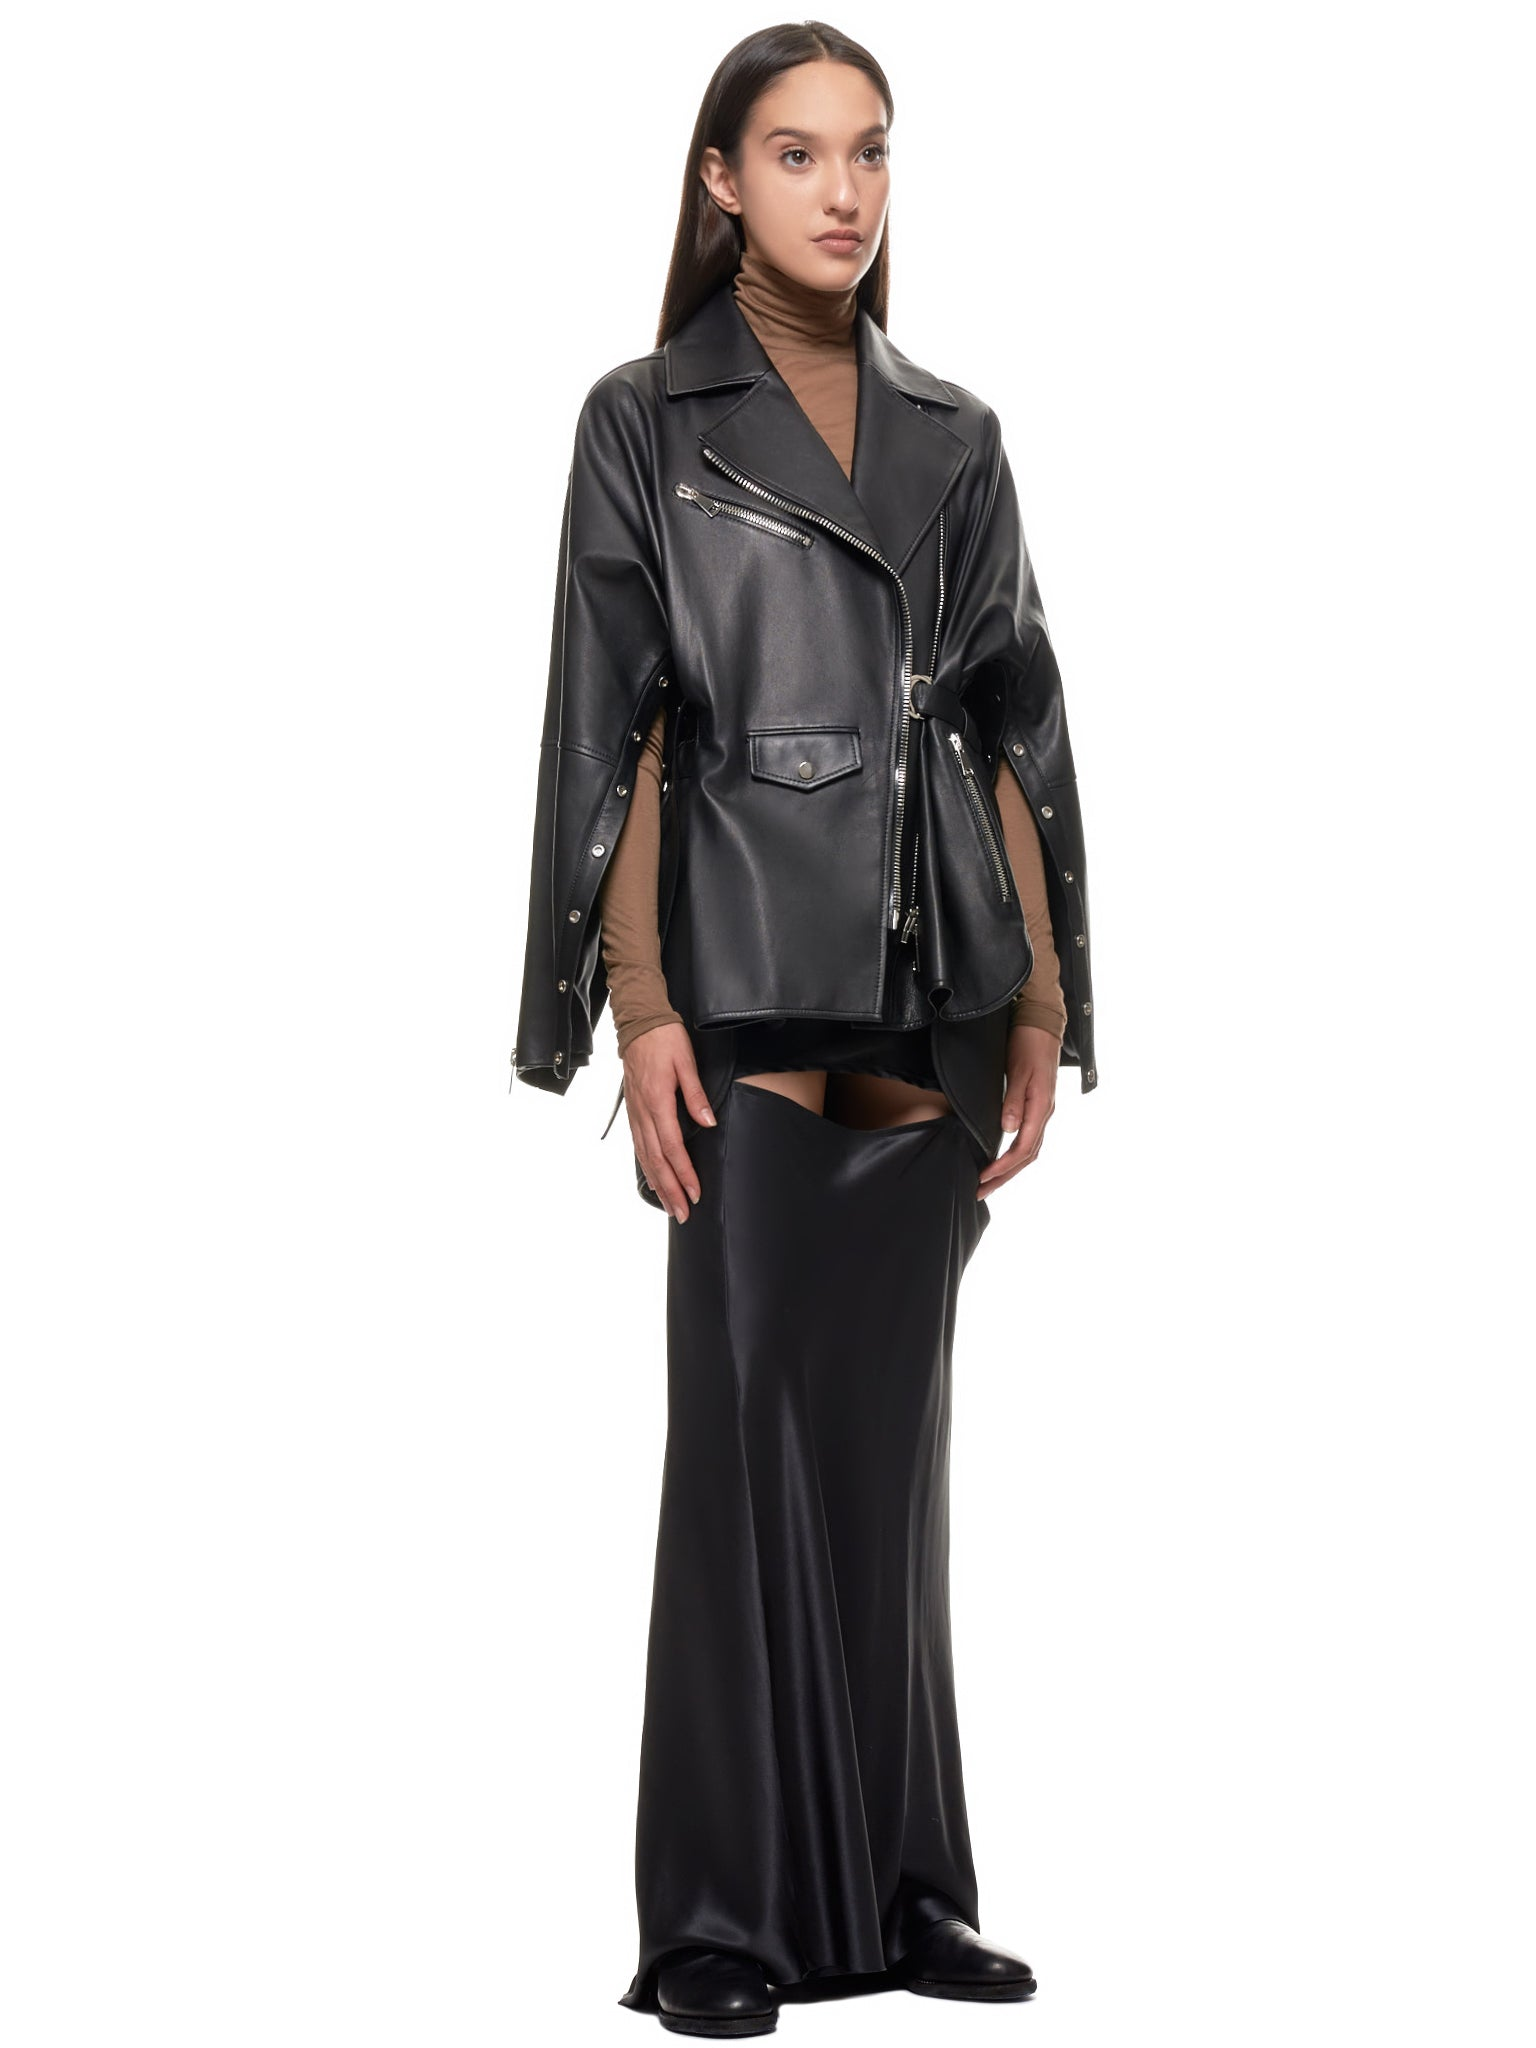 Lena Lumelsky Leather Jacket | H.Lorenzo Style